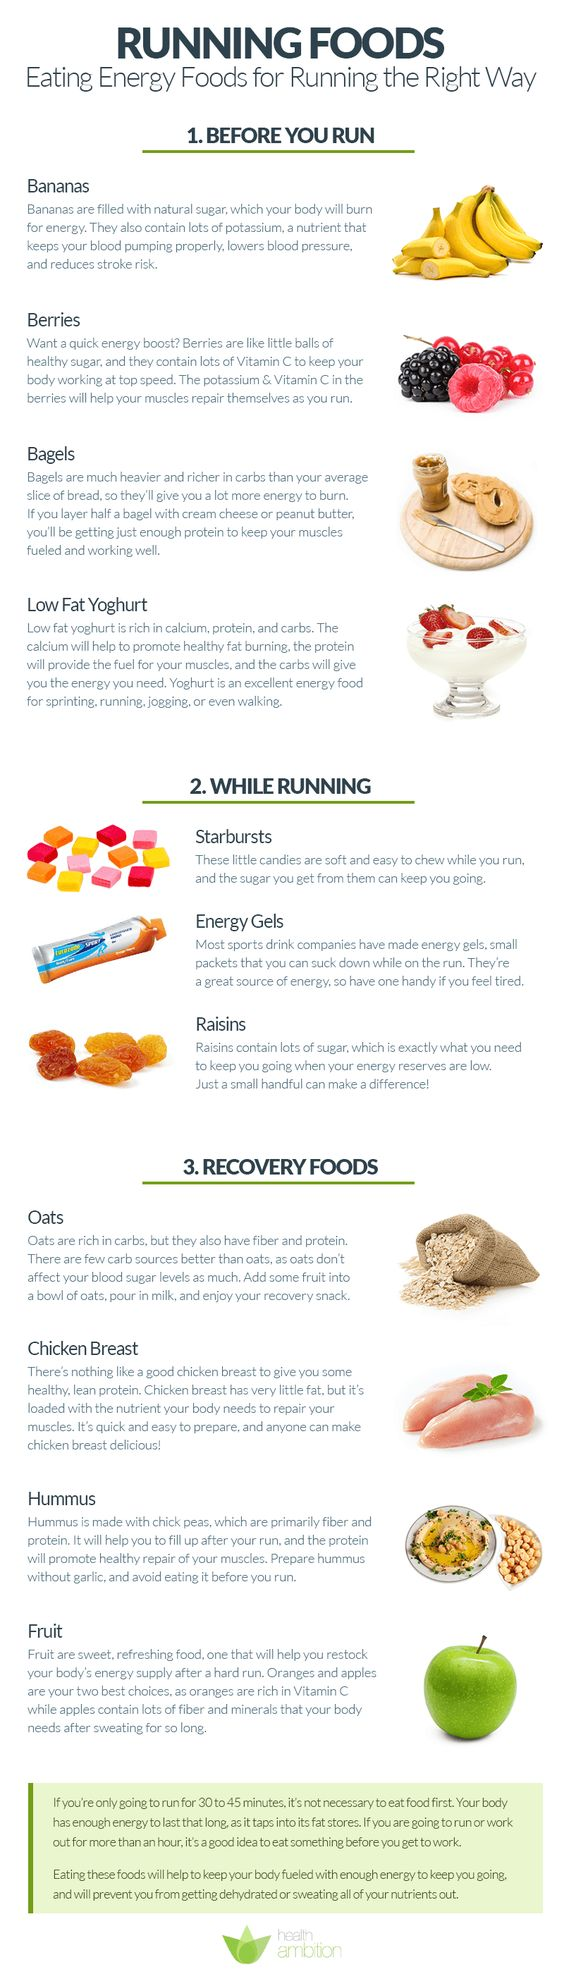 Running Foods – Eating Energy Foods for Running the Right Way . What should you eat before, during and after running? Is it helpful to take whey protein after running?